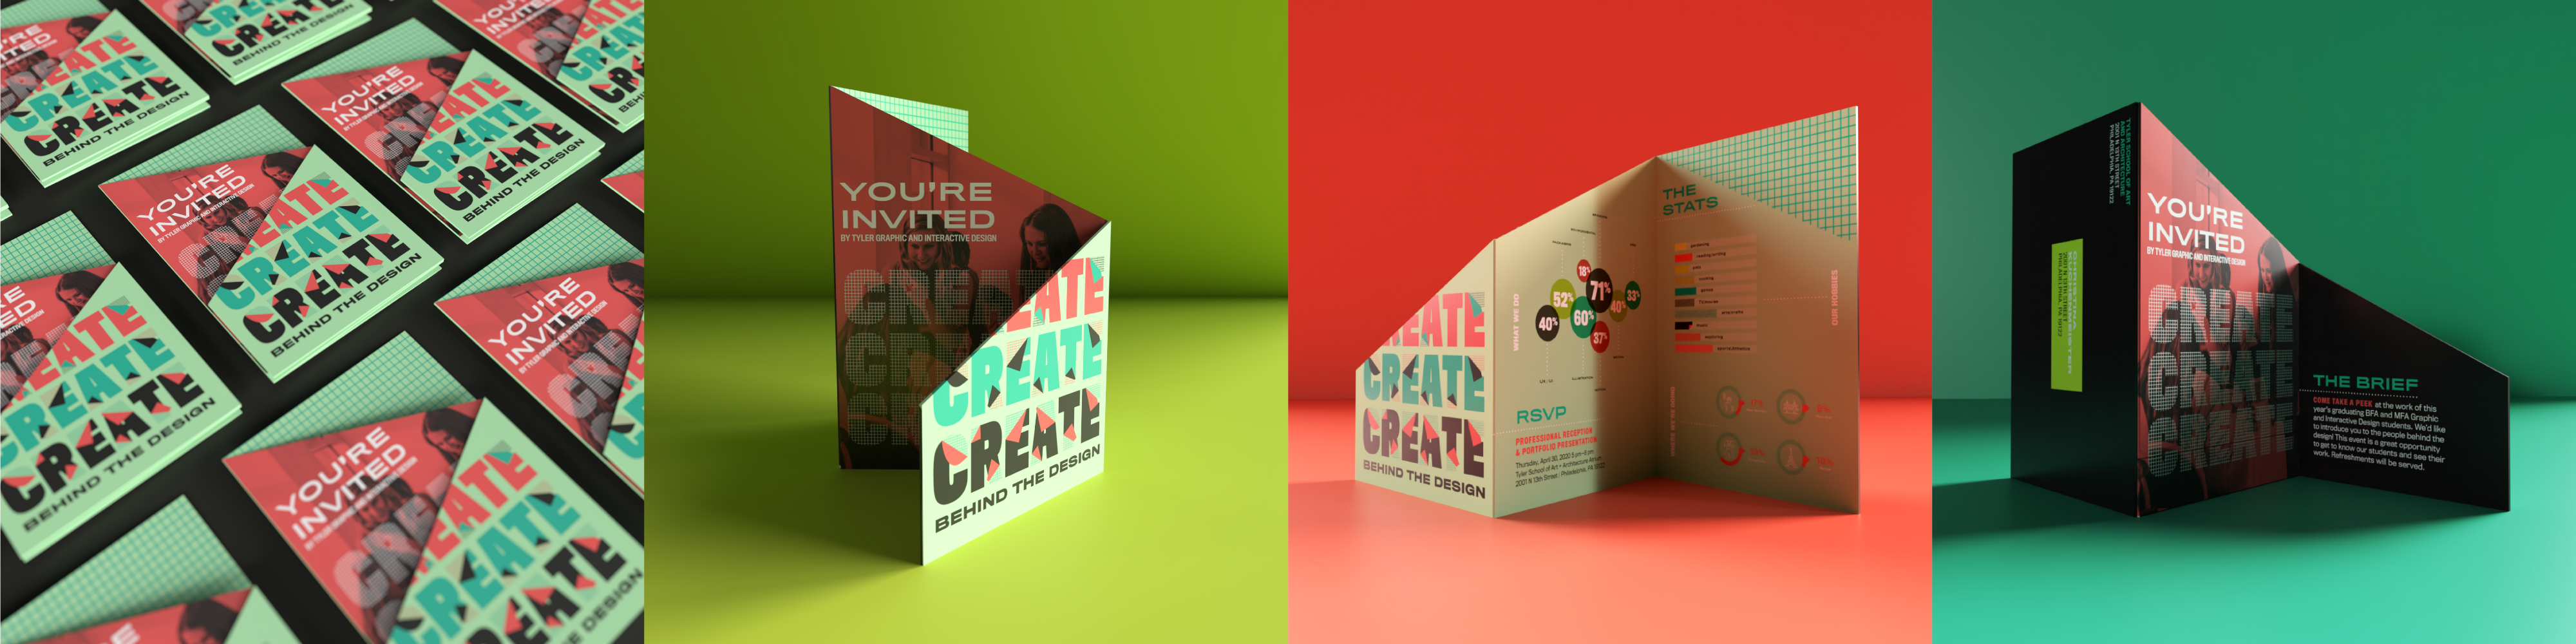 four images collaged together with different angles of the invitation on a colored background